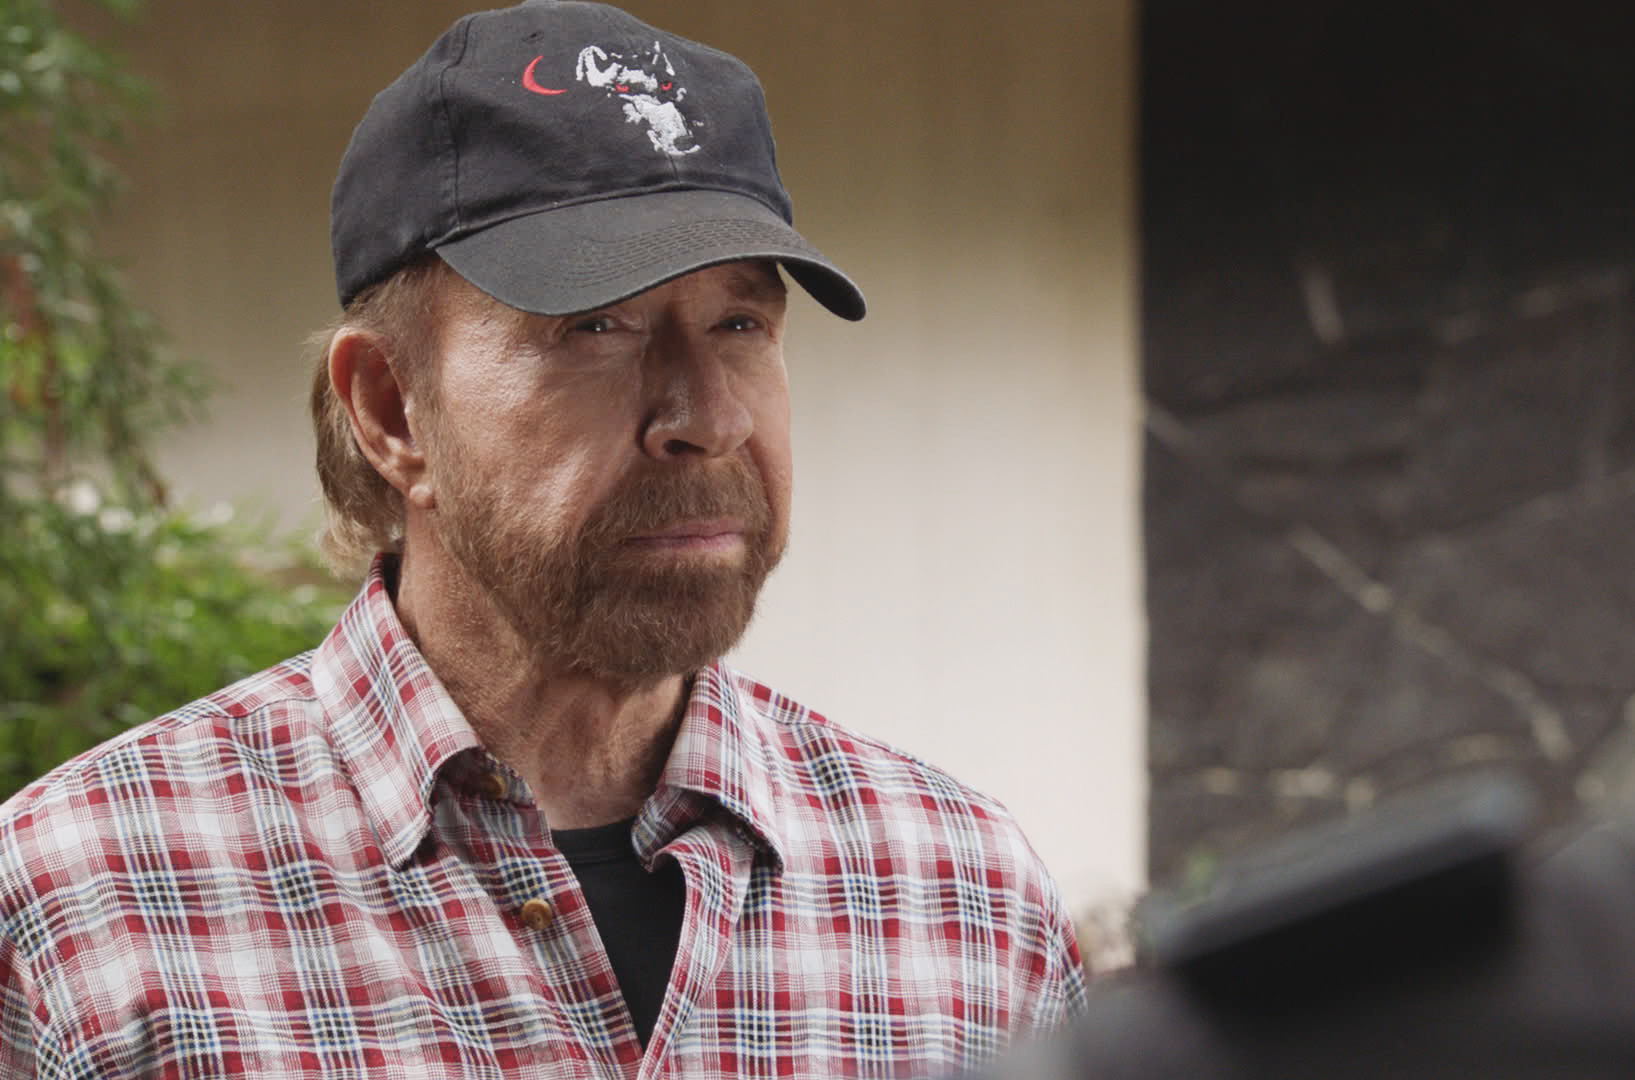 Chuck Norris's rep denies actor participated in deadly pro-Trump riots: 'Chuck is much more handsome' than lookalike